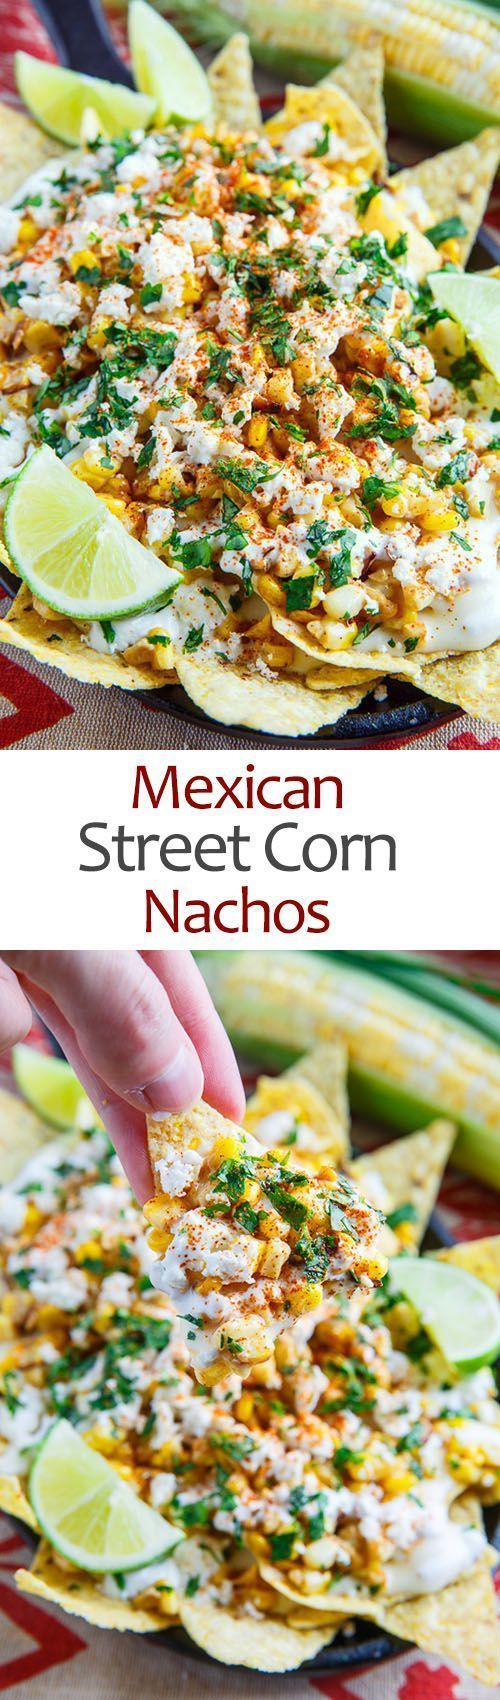 #NationalCornChipDay: Mexican Street Corn Nachos - all the flavours of Mexican style street corn in nacho form with grilled or charred corn, mayo, feta, cilantro, cayenne and lime juice along with the nachos and creamy melted Monterey Jack cheese sauce!